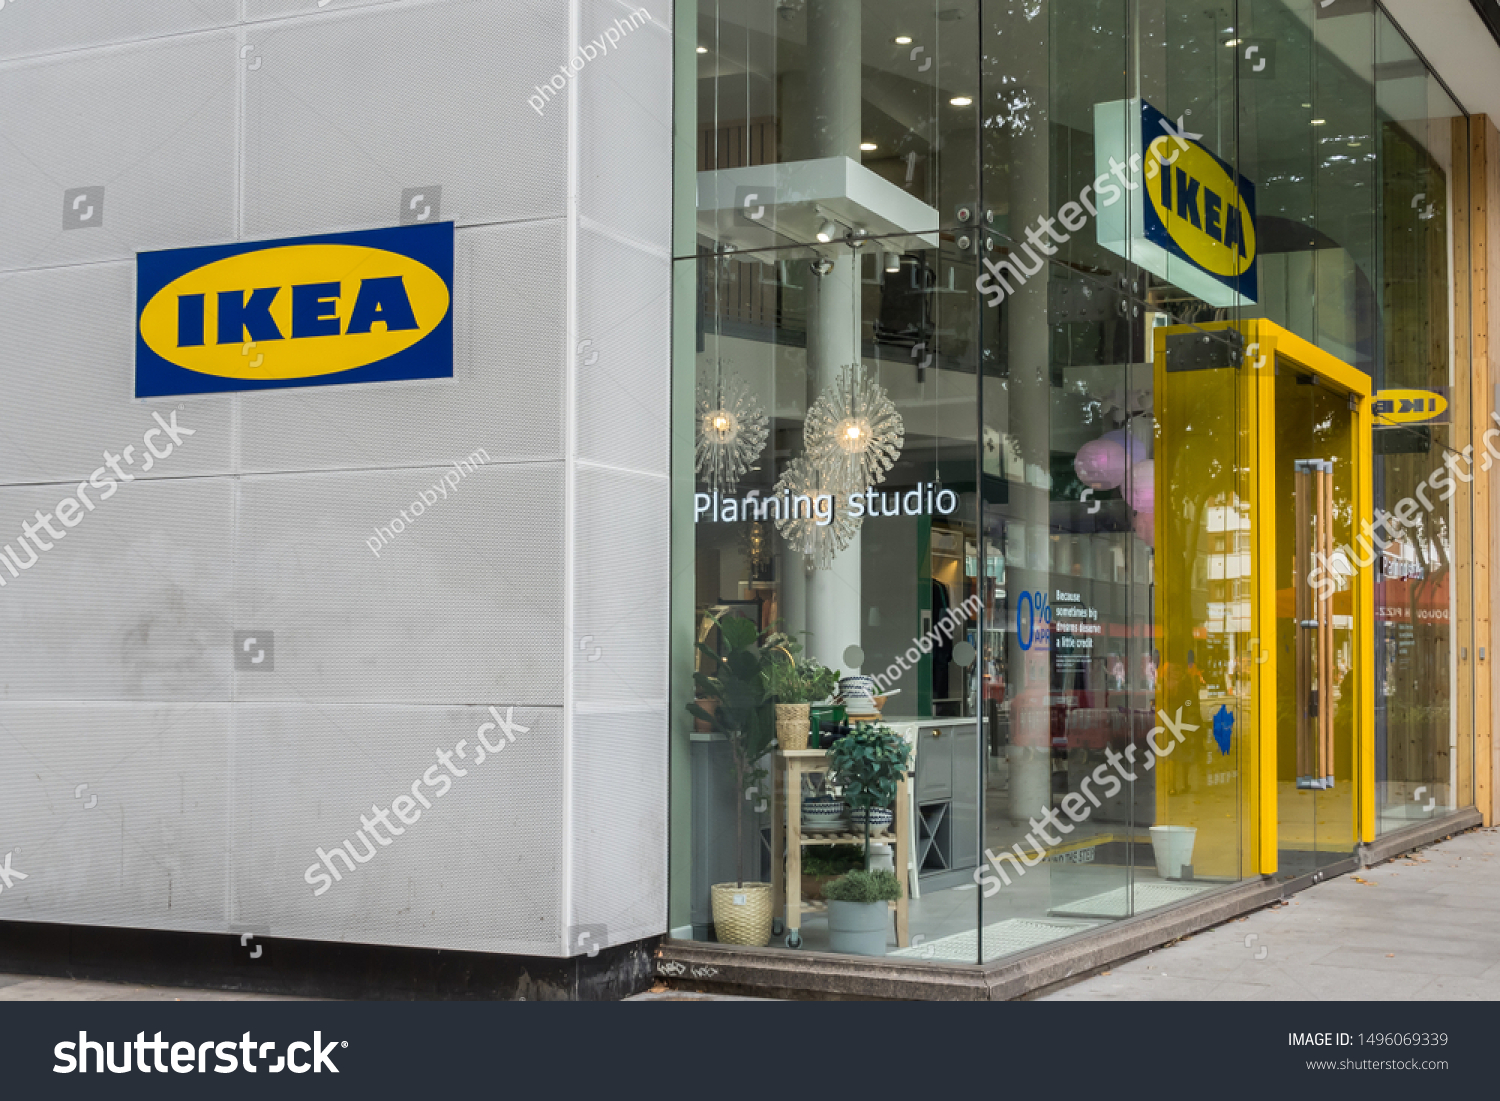 Ikea Home Planner Italiano london england august 4 2019 ikea stock photo (edit now